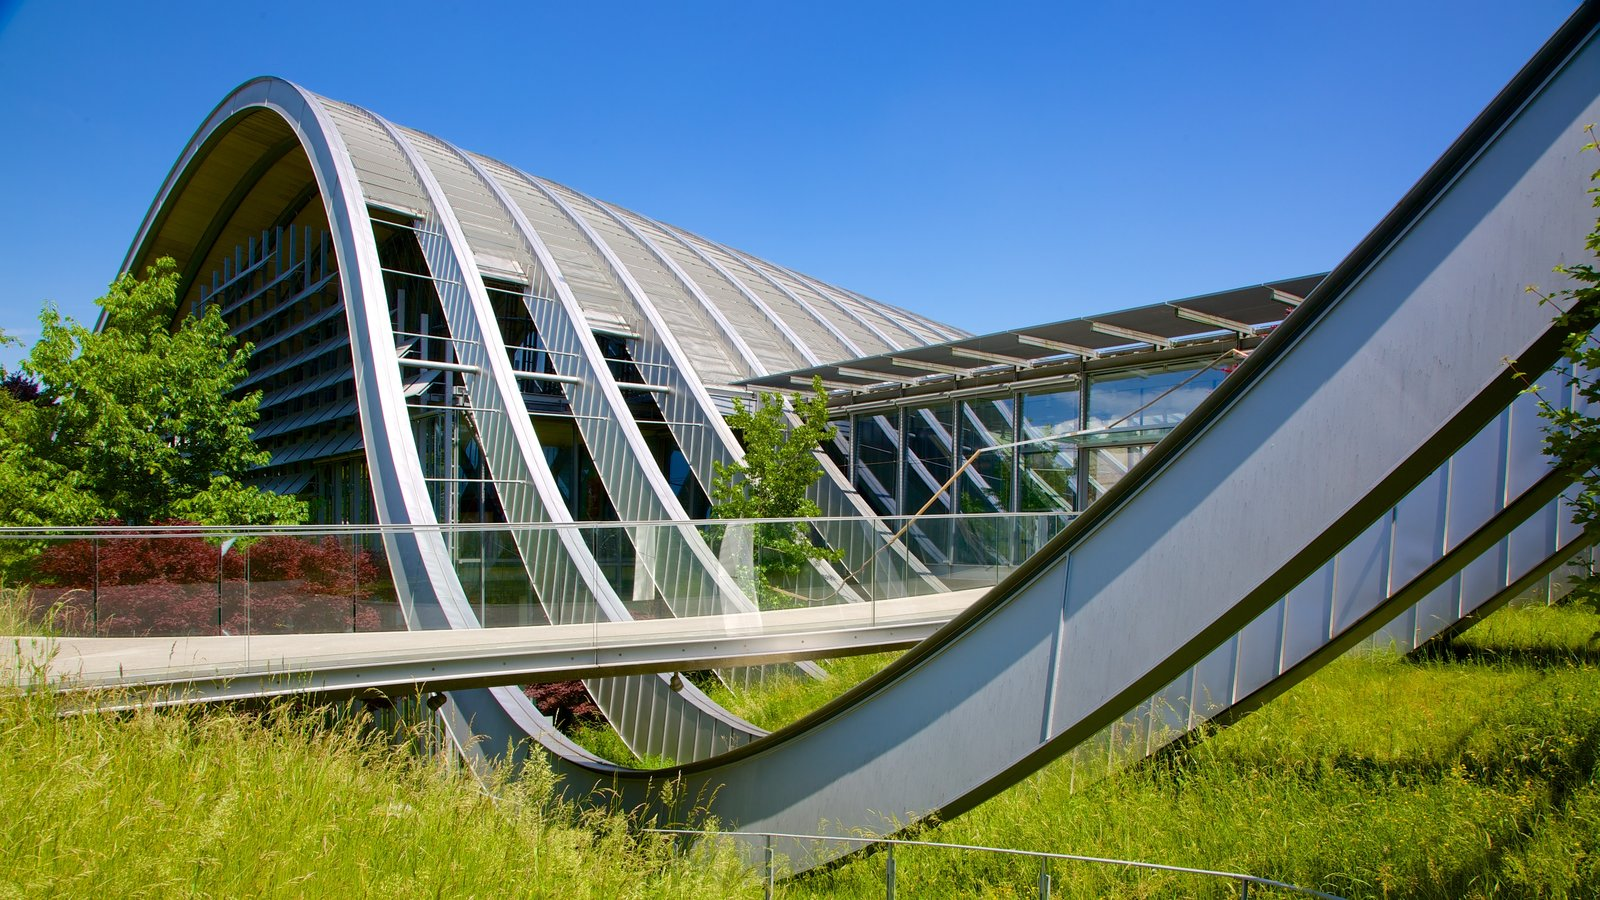 Modern Architecture Museum modern architecture pictures: view images of western switzerland